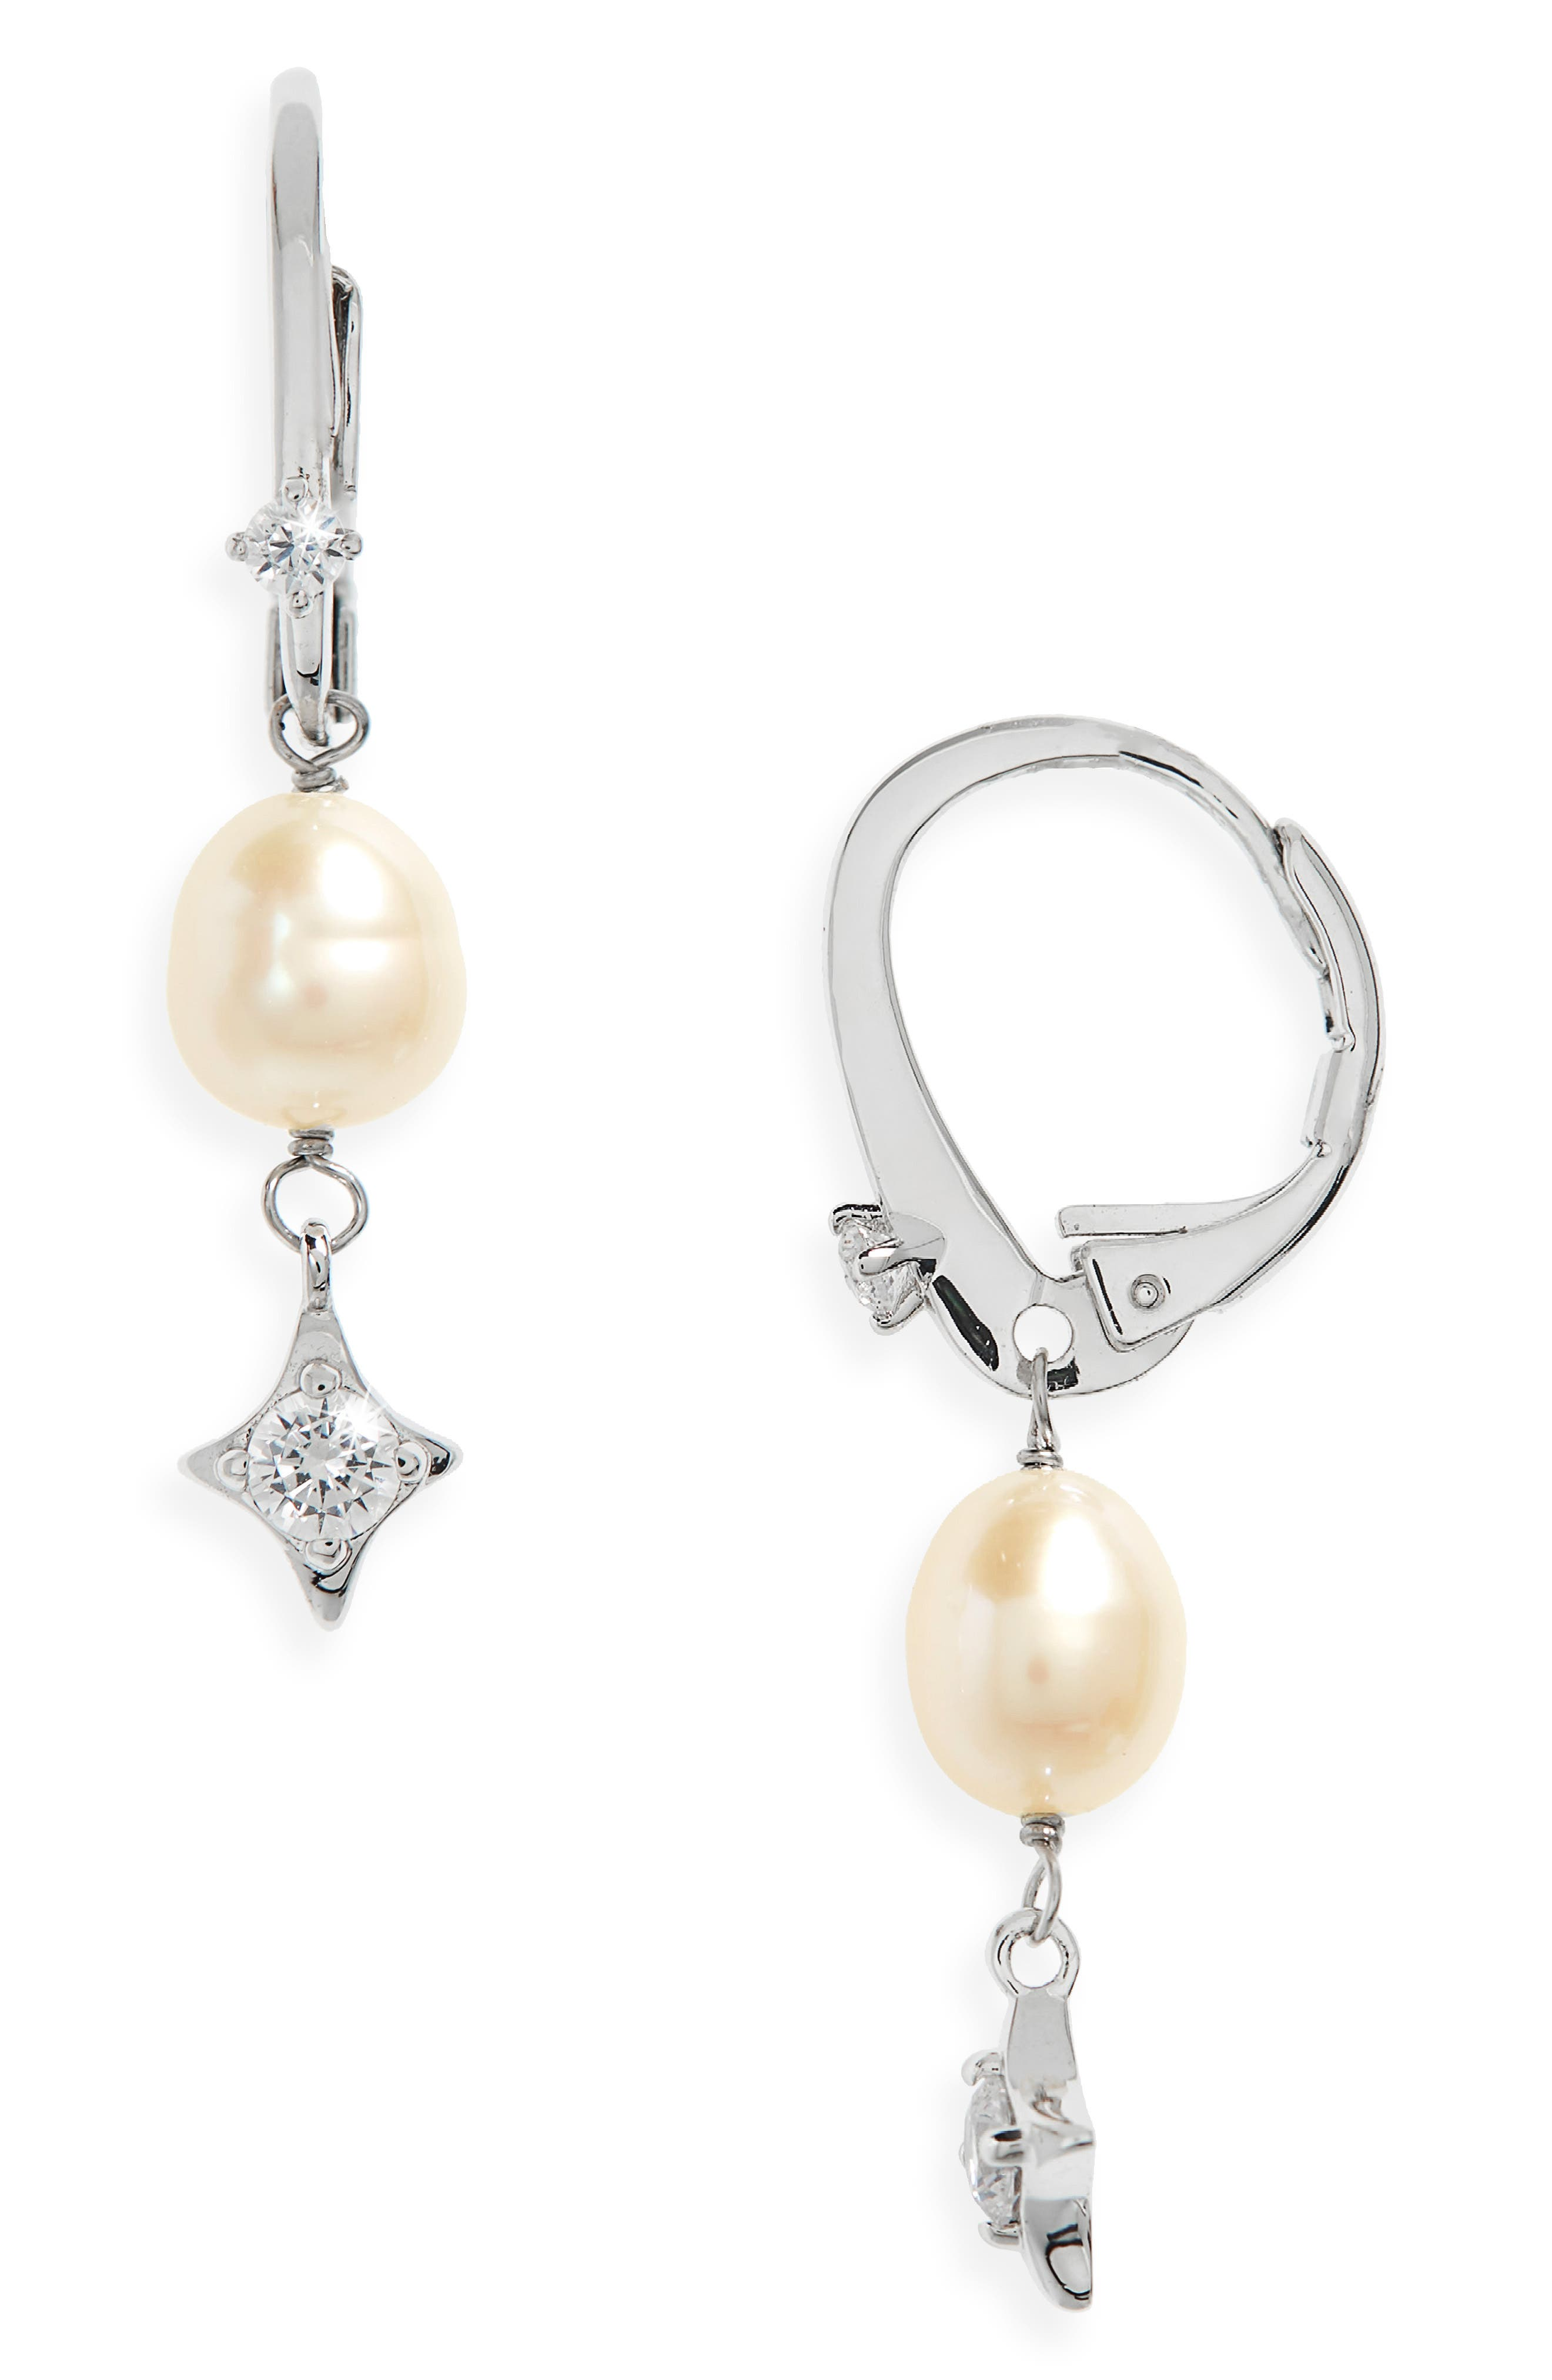 Freshwater Pearl Drop Earrings,                             Main thumbnail 1, color,                             Silver/ White Pearl